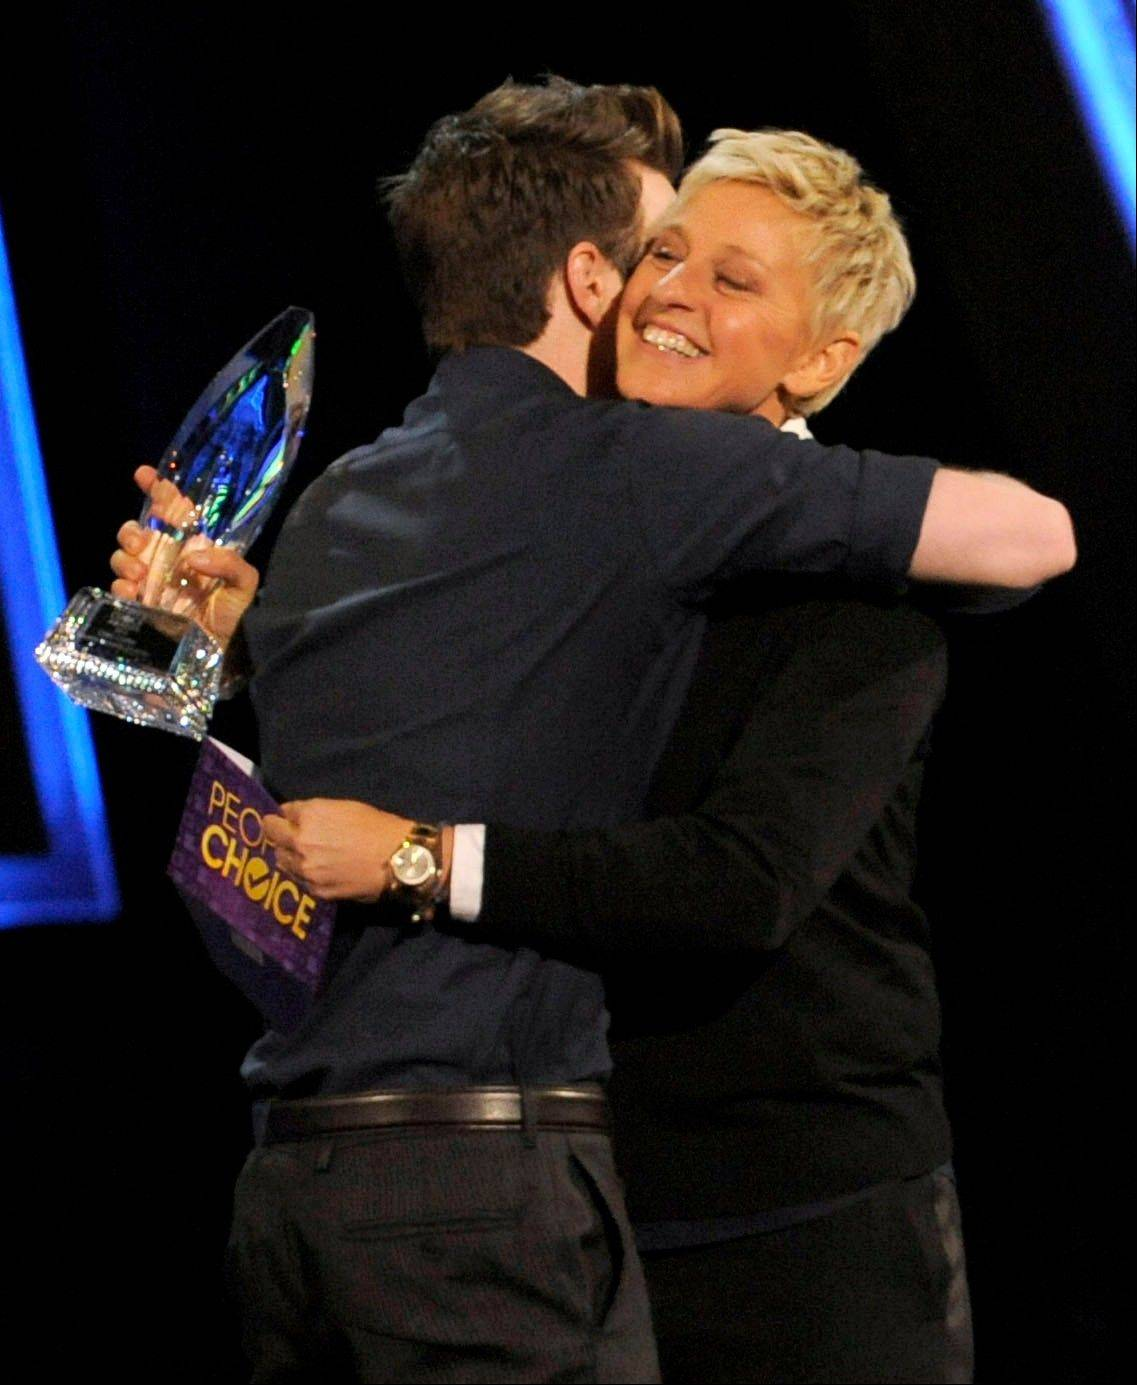 Chris Colfer, left, accepts the award for favorite comedic TV actor from presenter Ellen Degeneres at the People�s Choice Awards at the Nokia Theatre on Wednesday Jan. 9, 2013, in Los Angeles.